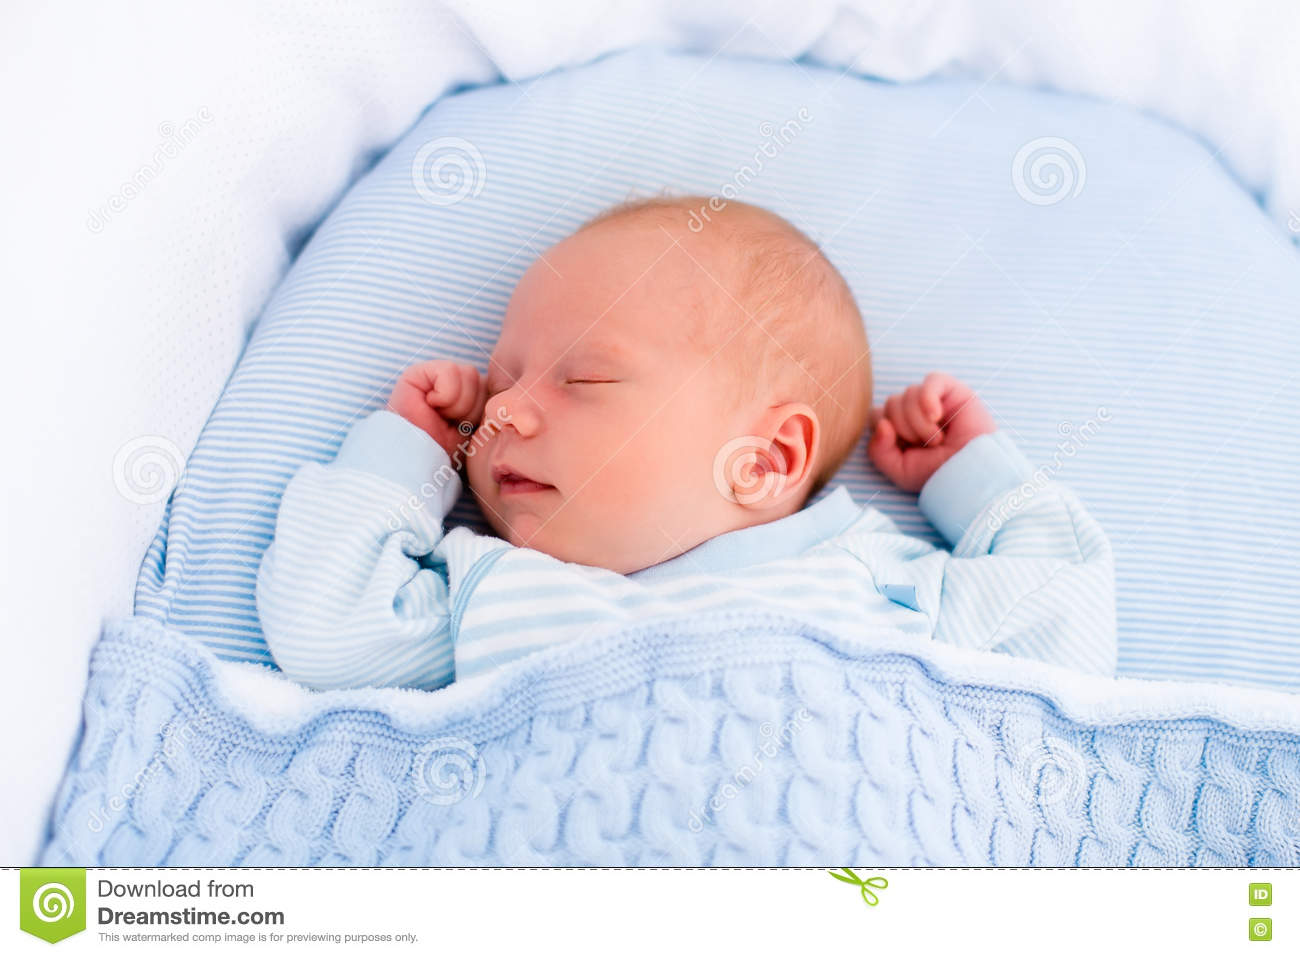 d3436aefb5b5 Newborn Baby Boy In White Bassinet Stock Image - Image of baby ...